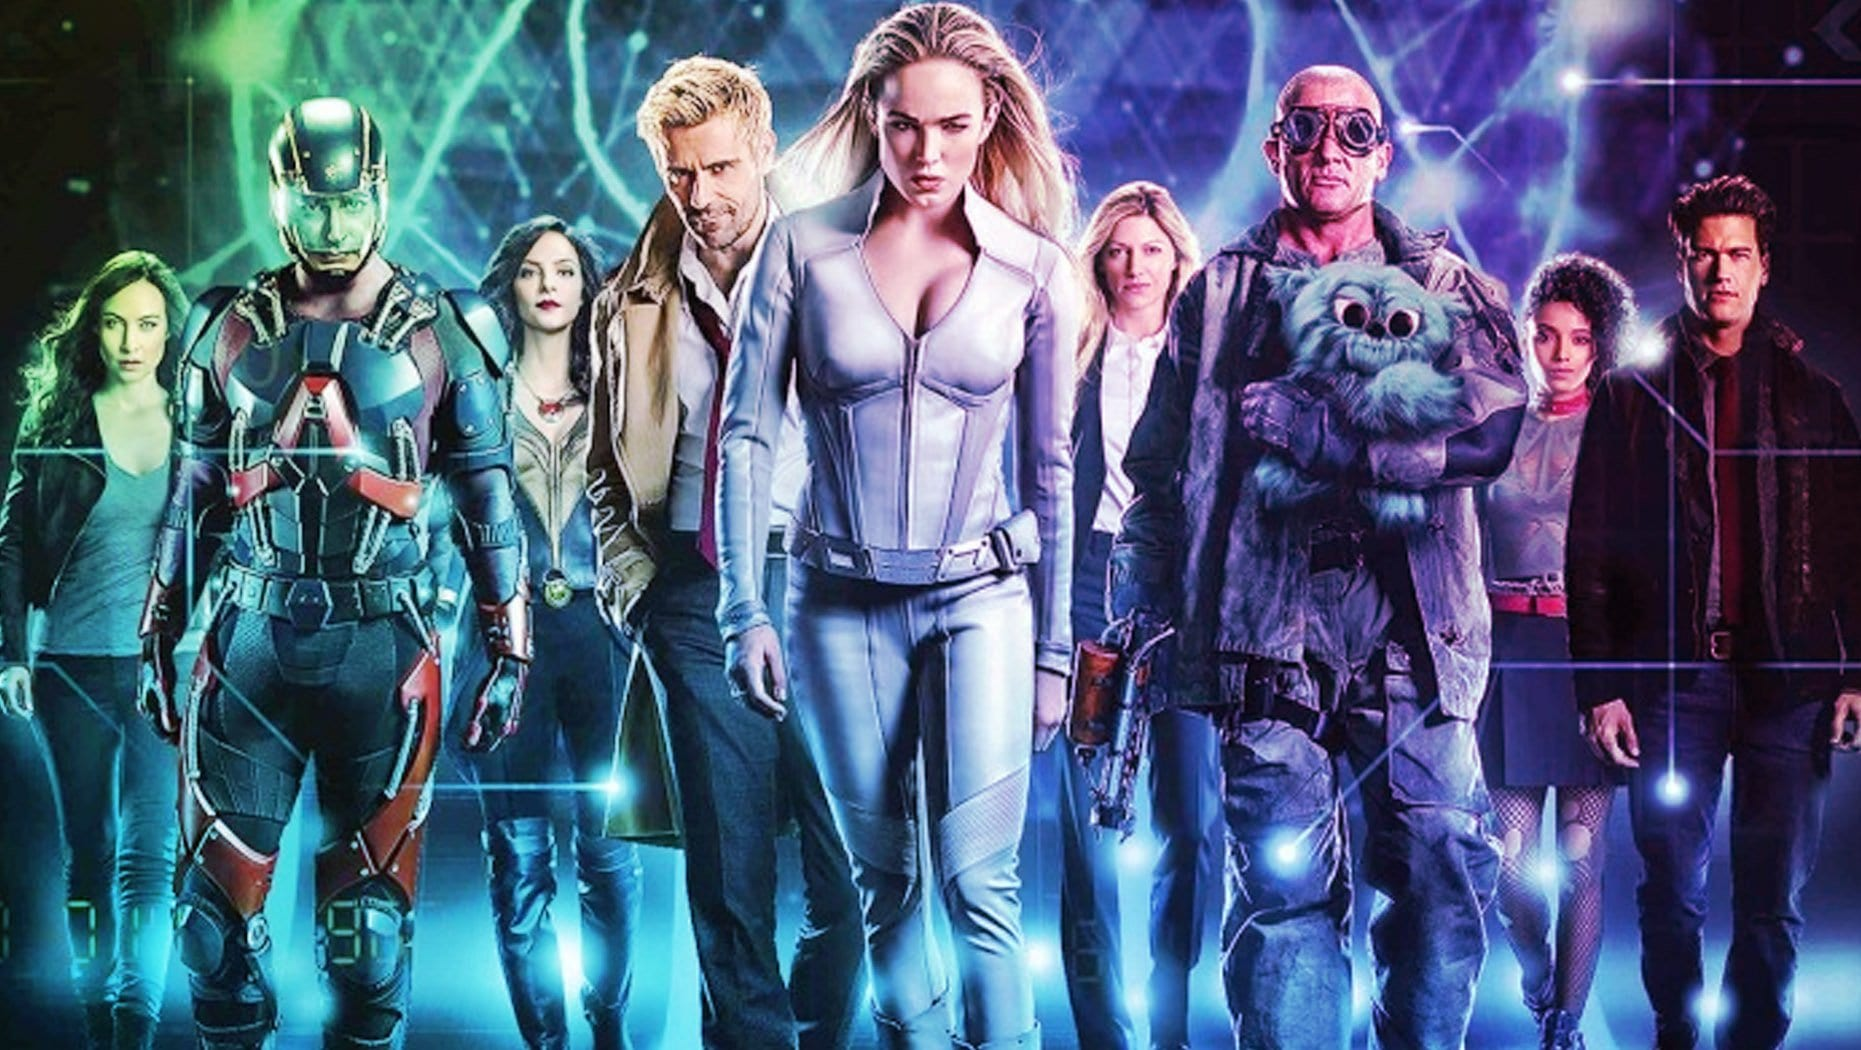 Preview: DC's Legends of Tomorrow Season 6 Episode 10